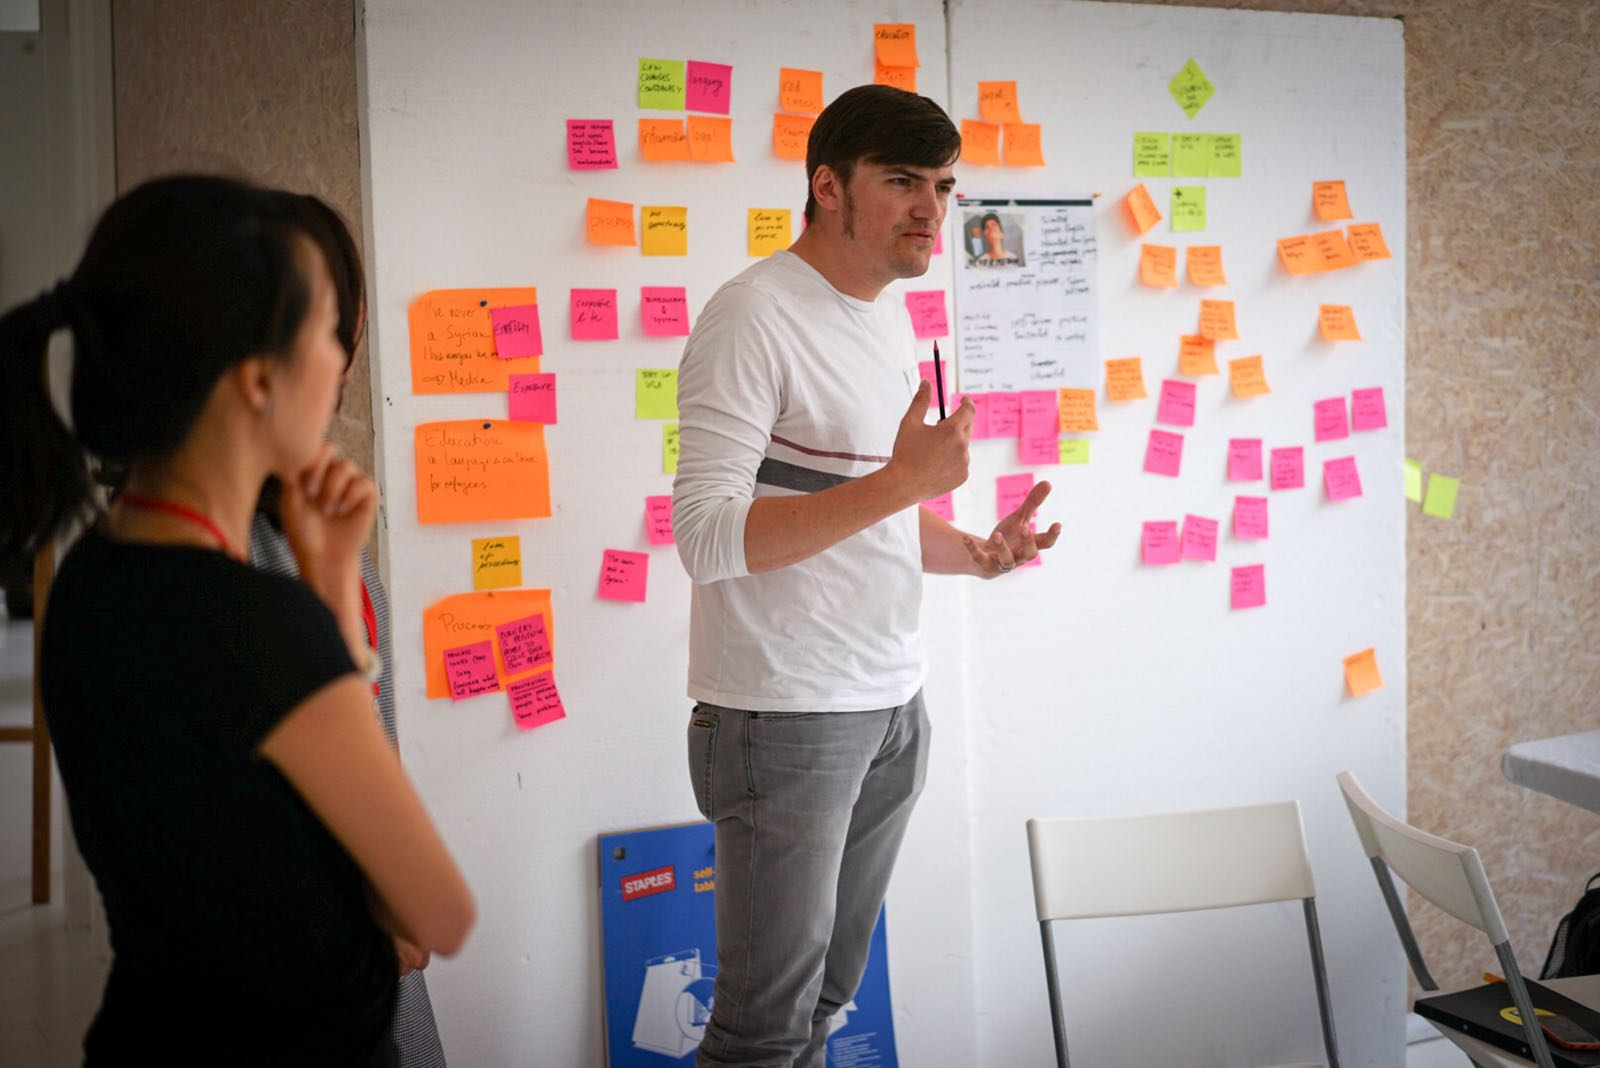 What I (Un)learned About Design Thinking at the DesignThinkers Bootcamp